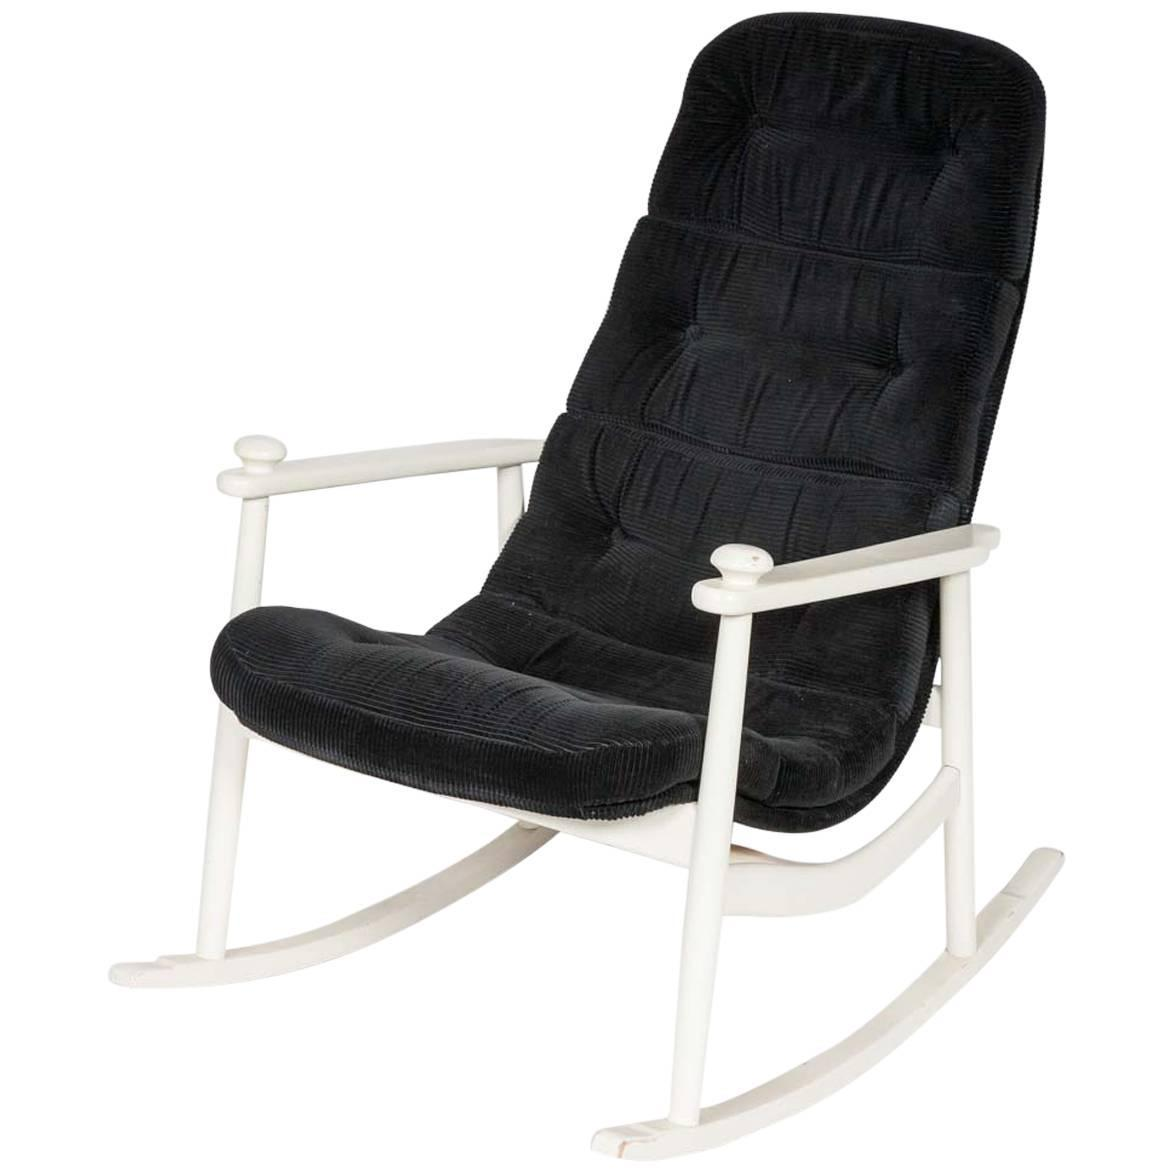 white upholstered rocking chair covers hire northern ireland frame at 1stdibs